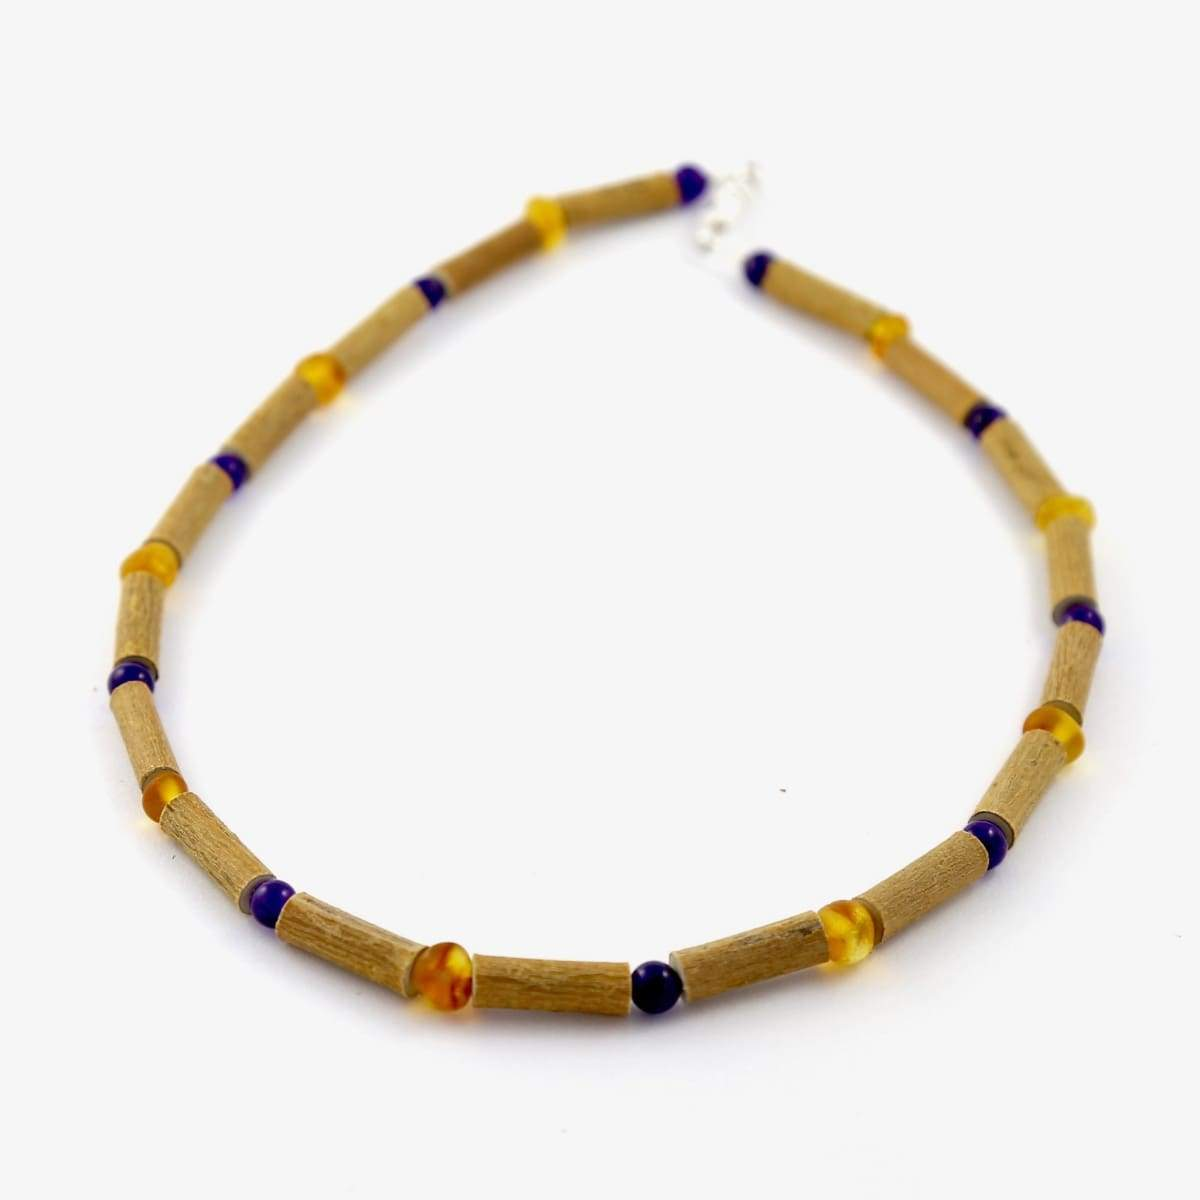 Hazelwood Amber & Amethyst - 11 Necklace - Barrel Twist Clasp - Hazelwood Jewelry